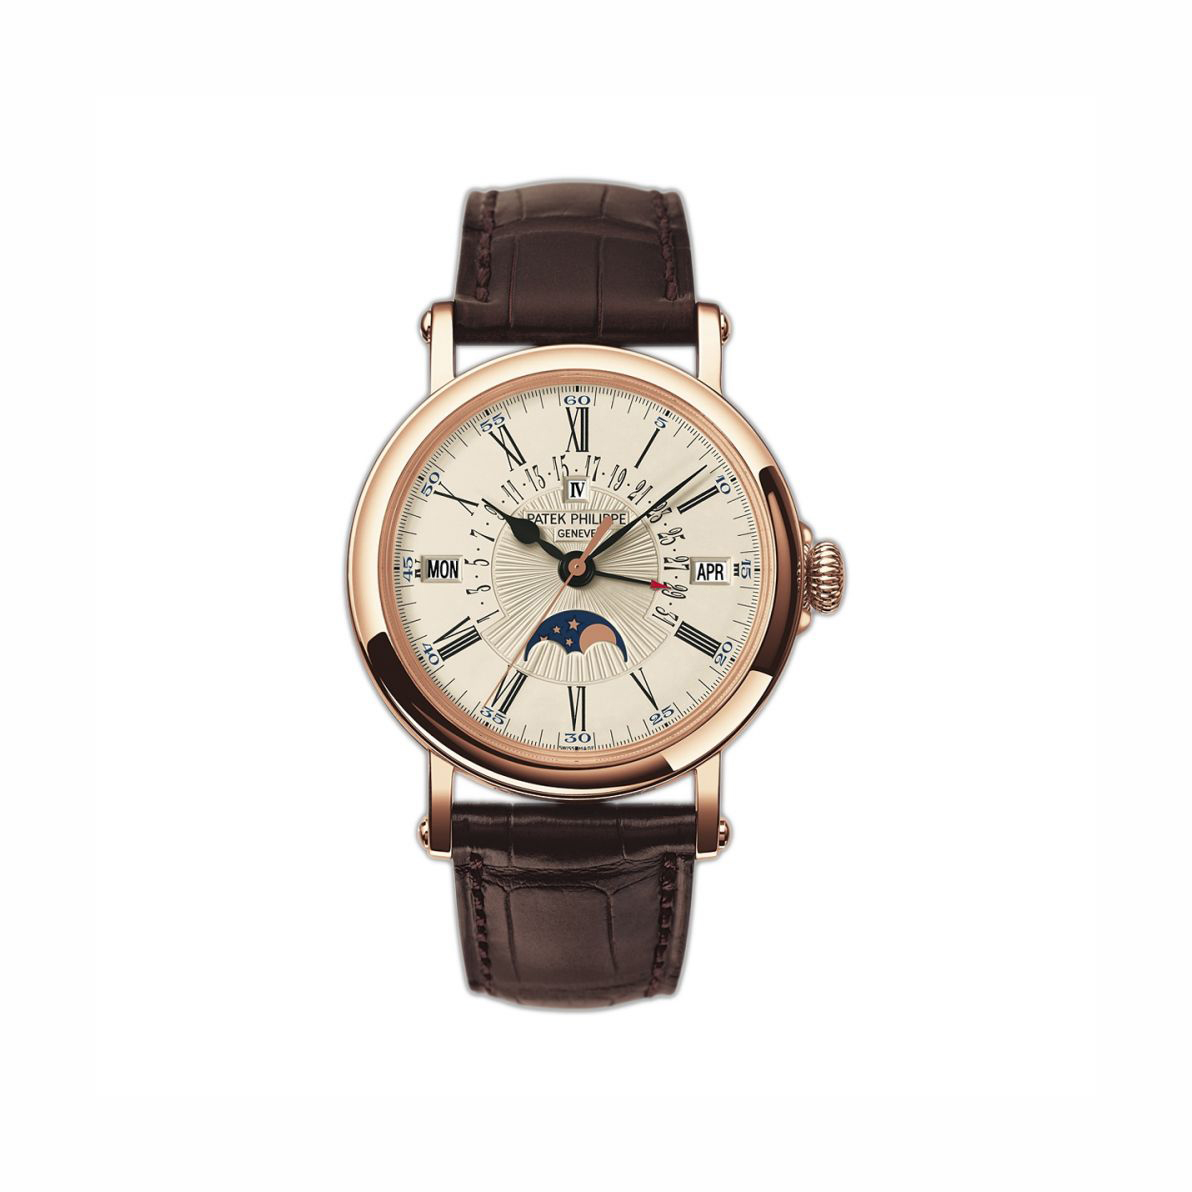 alt:textPatek Philippe Grand Complications Moon Phase